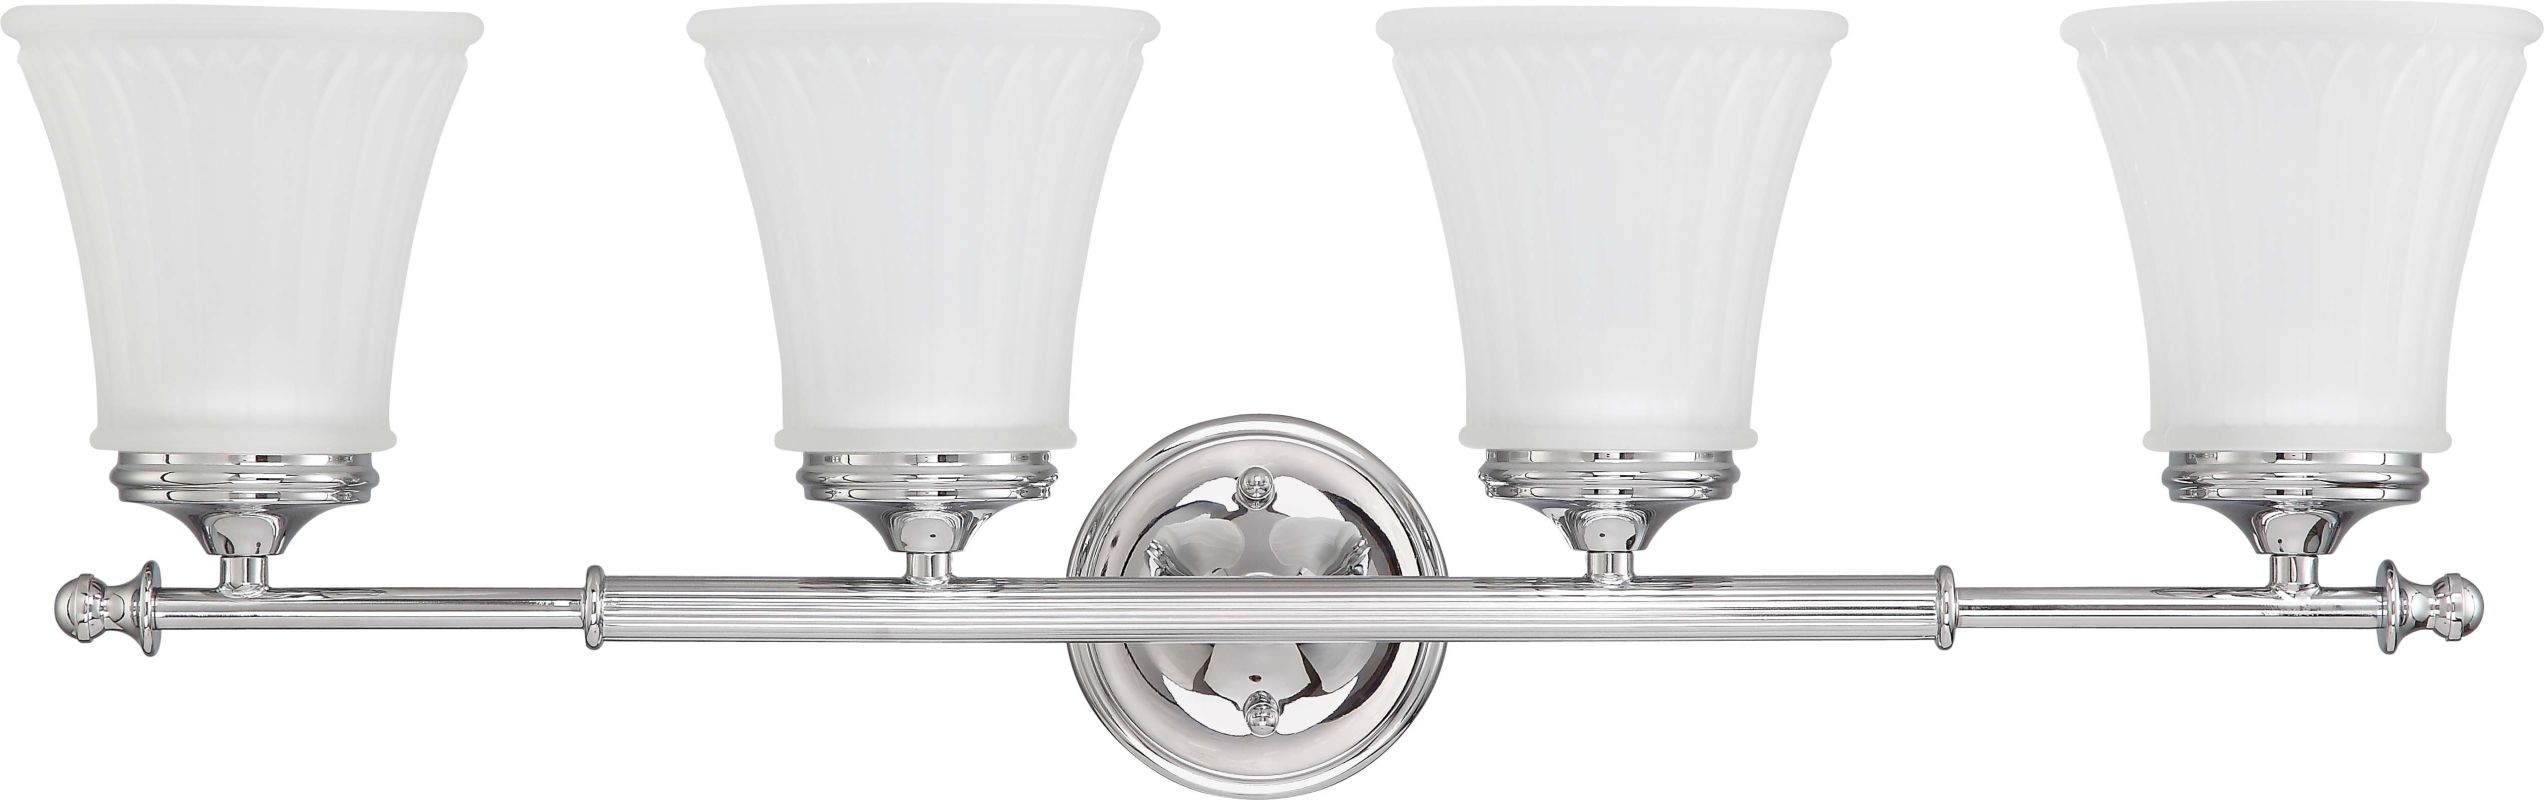 Nuvo Lighting 60/4264 Teller Four Light Bathroom Fixture with Frosted